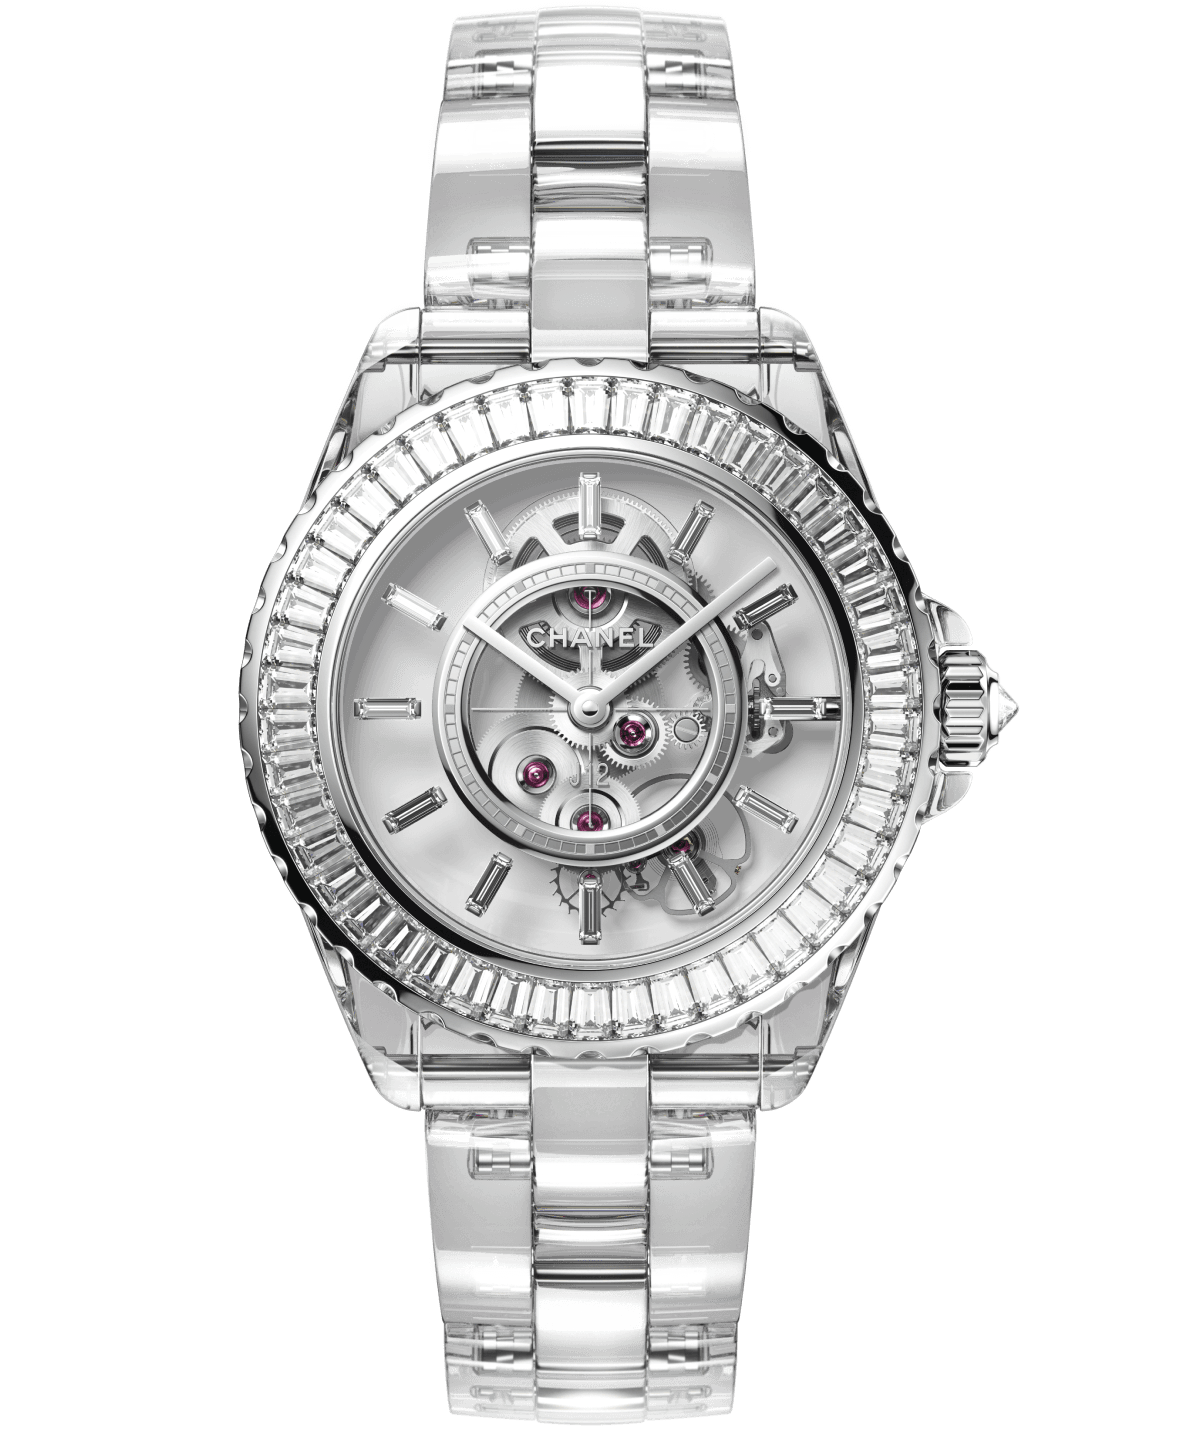 H6249 J12 X-RAY watch